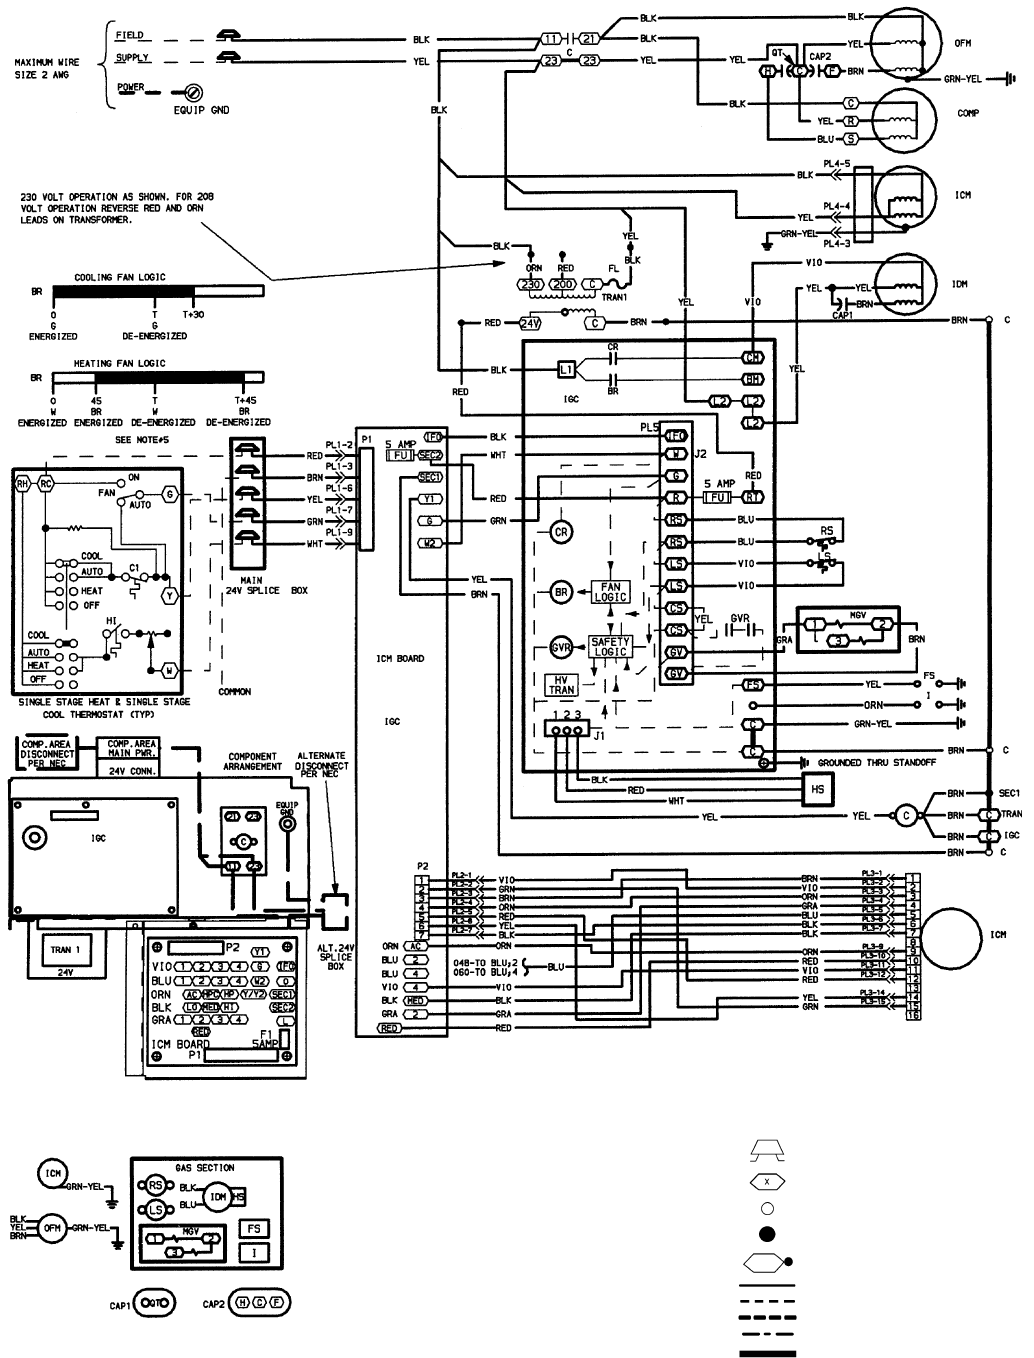 110 220 Single Phase Motor Wiring Diagram